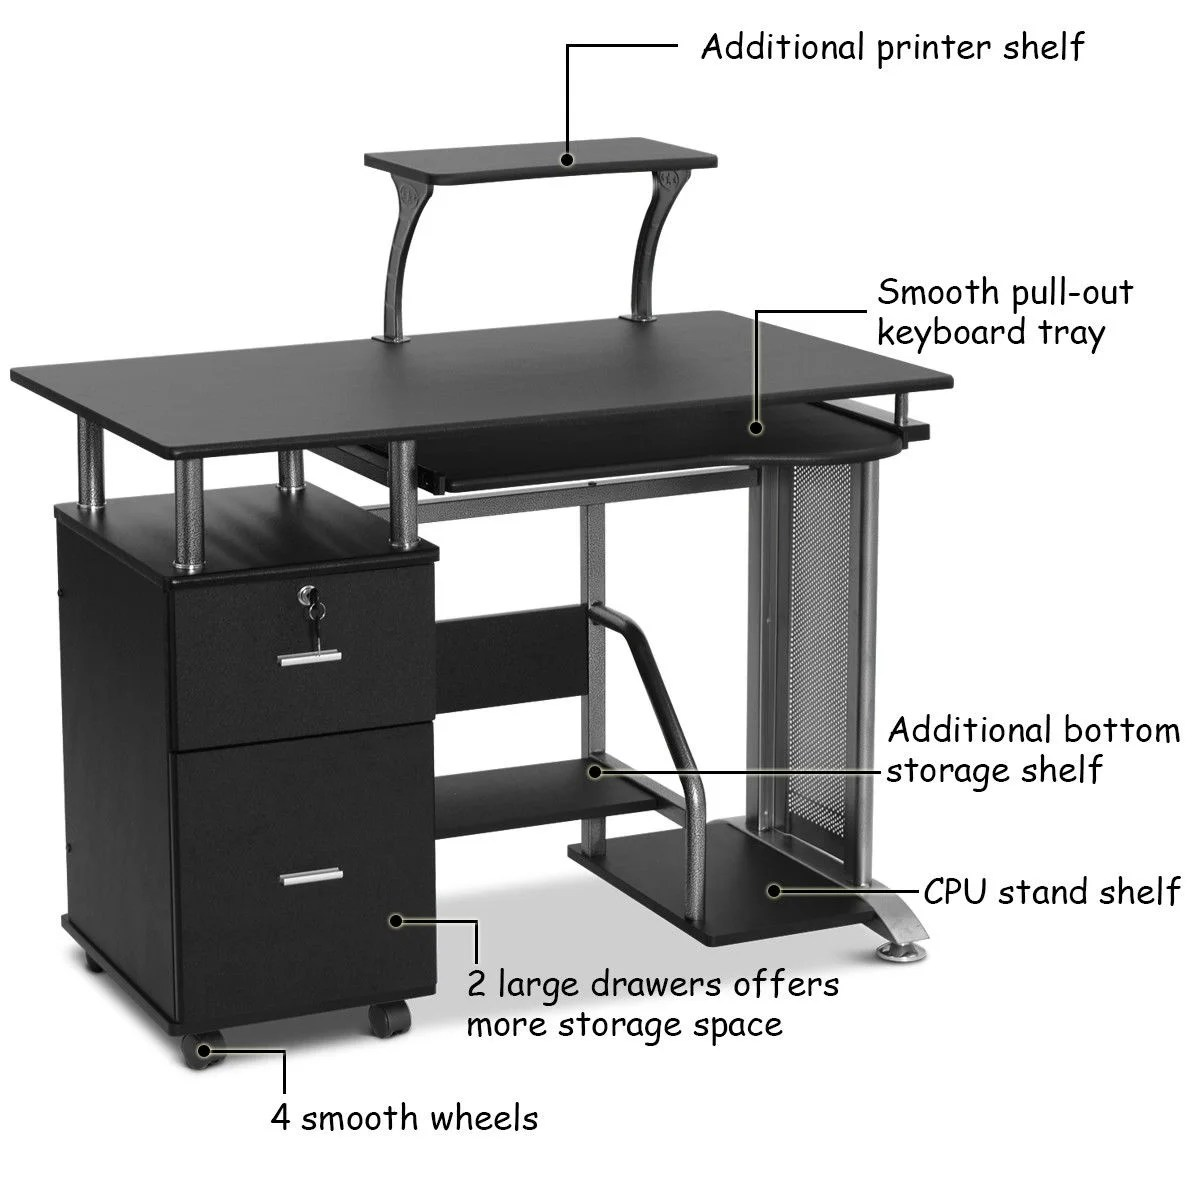 Workstation Furniture Costway Computer Desk Pc Laptop Table Workstation Home Office Furniture W Printer Shelf Black